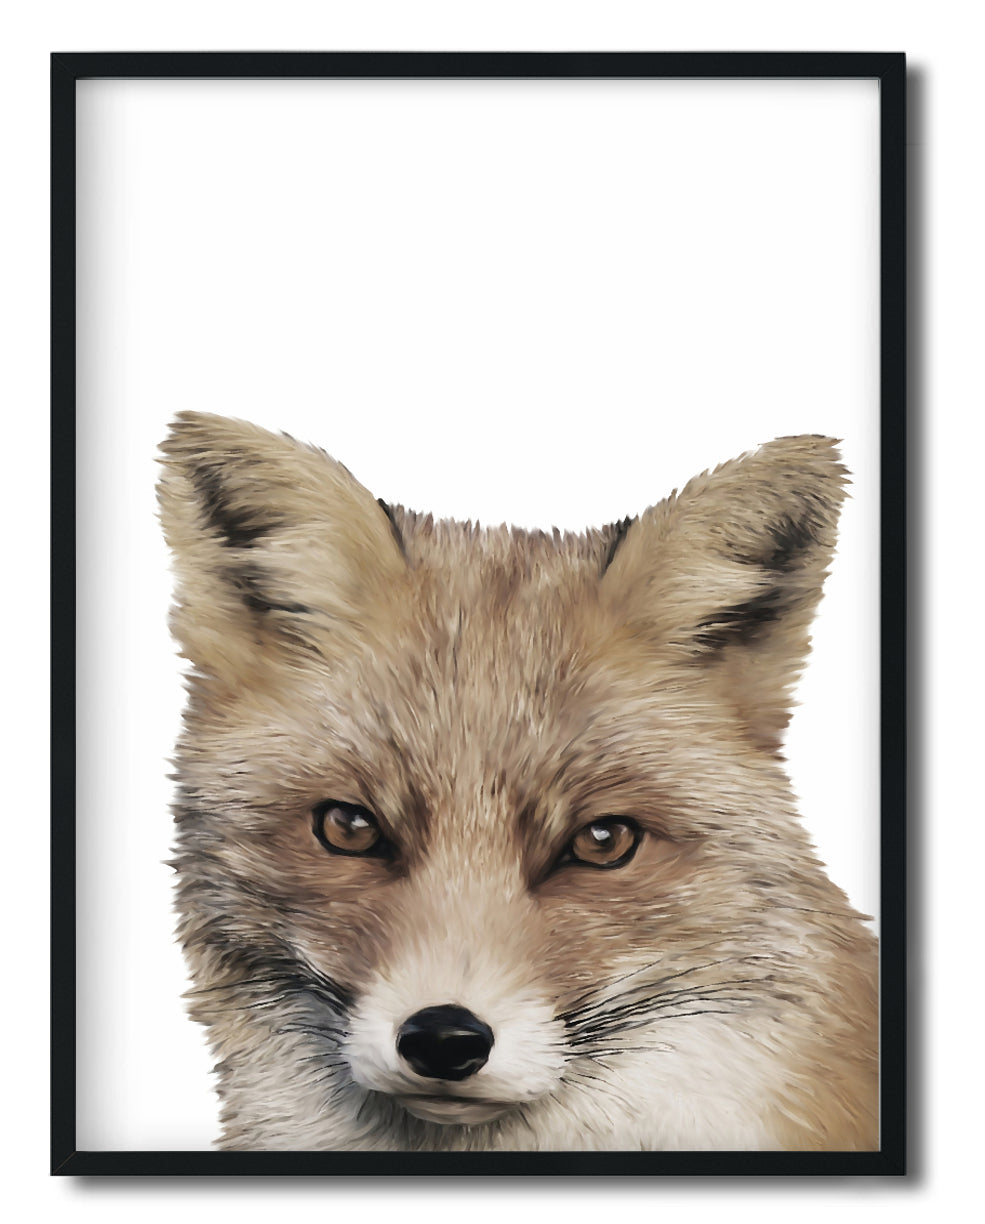 Wall Art - Felicity The Fox - Framed / unframed art print (A-802)